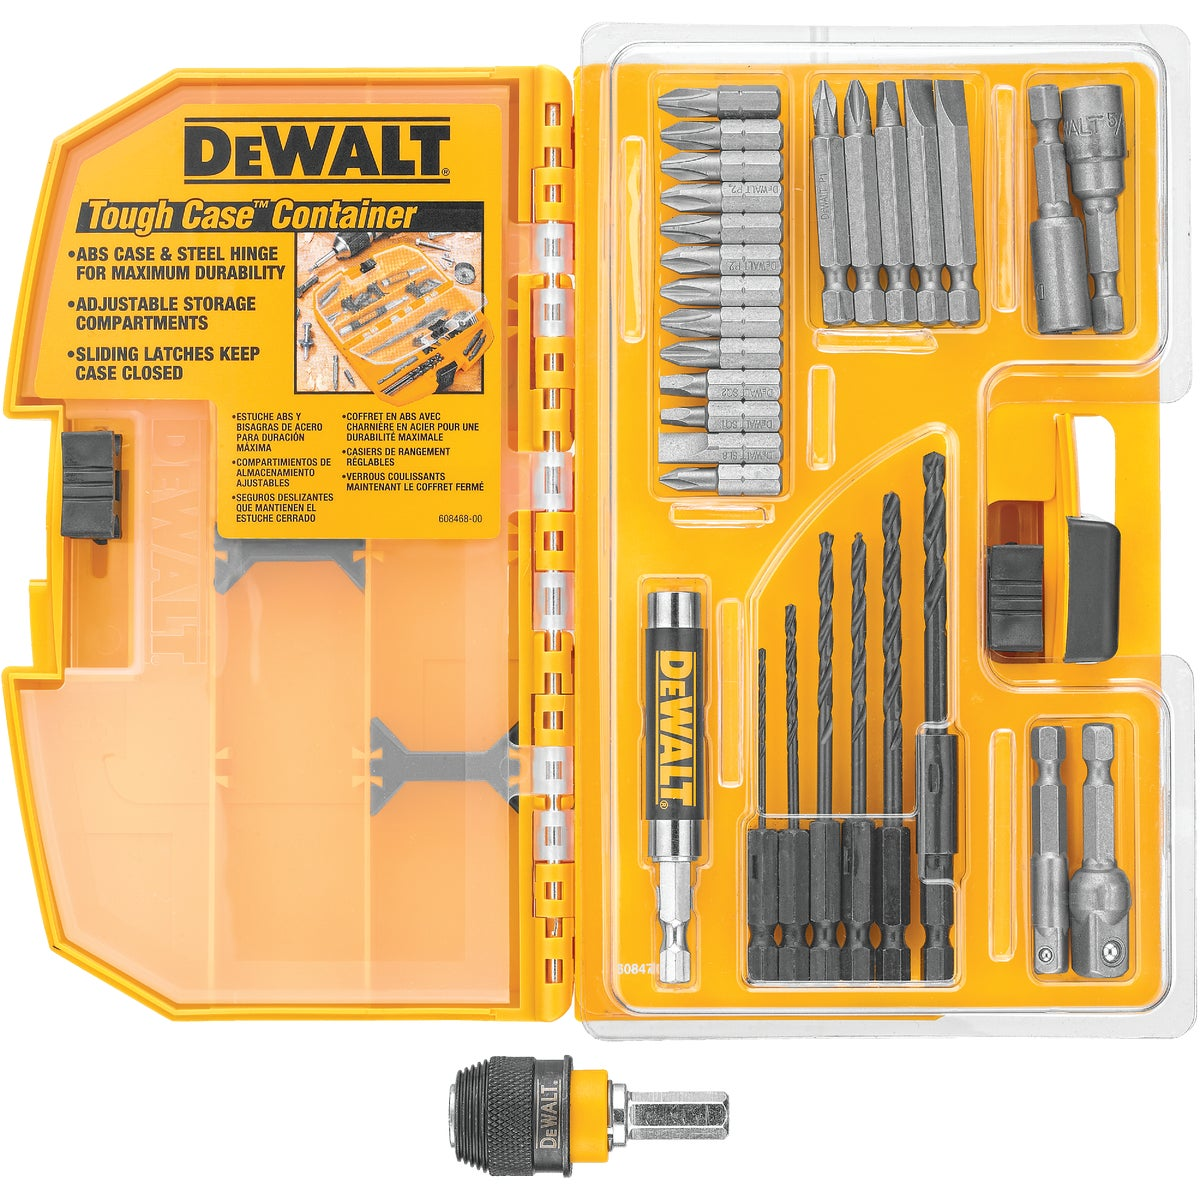 30PC RAPID LOAD SET - DW2518 by DeWalt